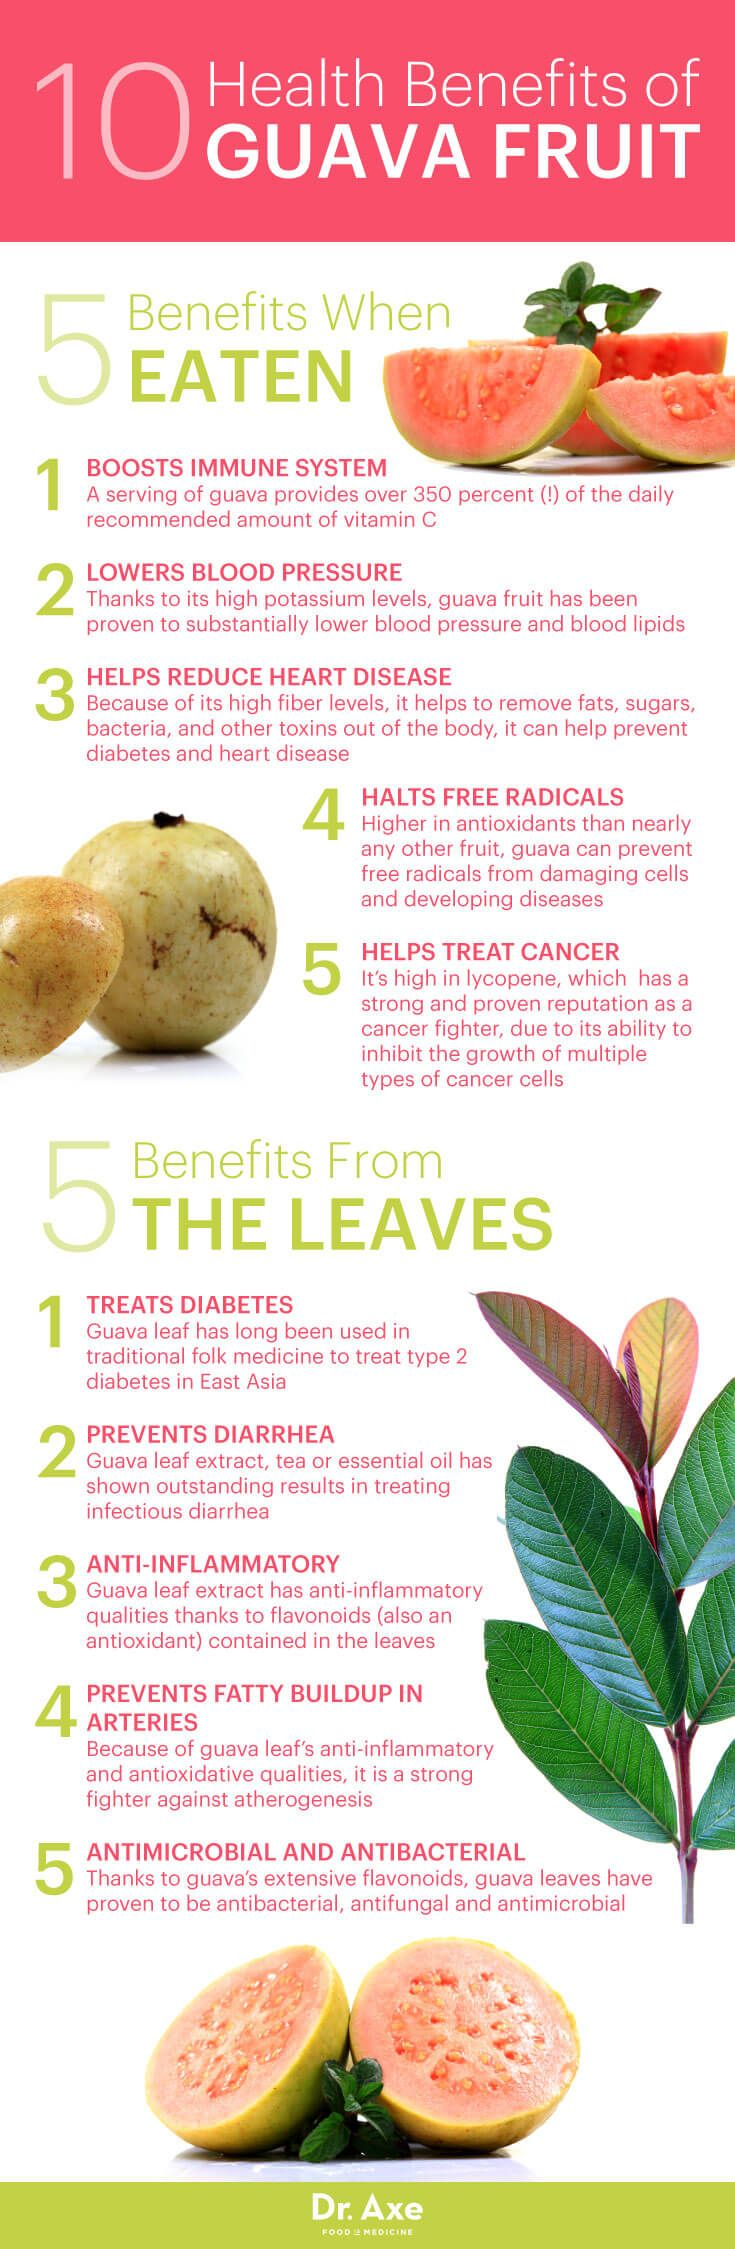 Guava: Top Antioxidant Food For The Immune System